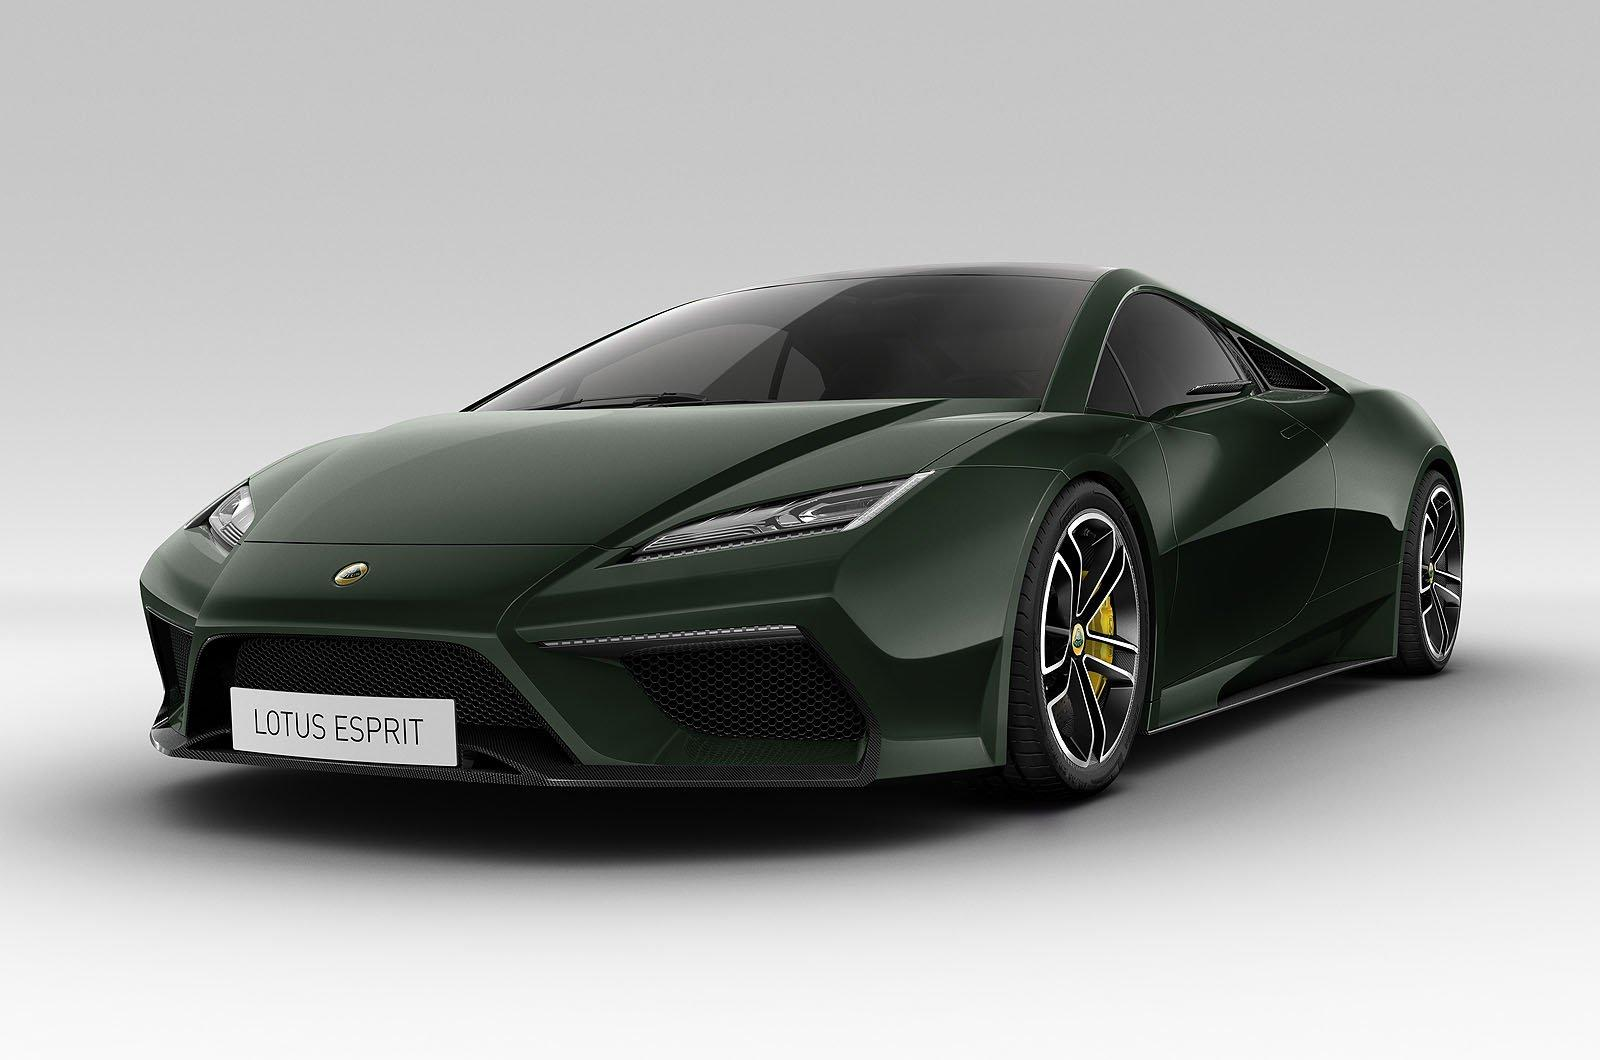 2014 Lotus Esprit Lotus' 2014 Esprit heading for production